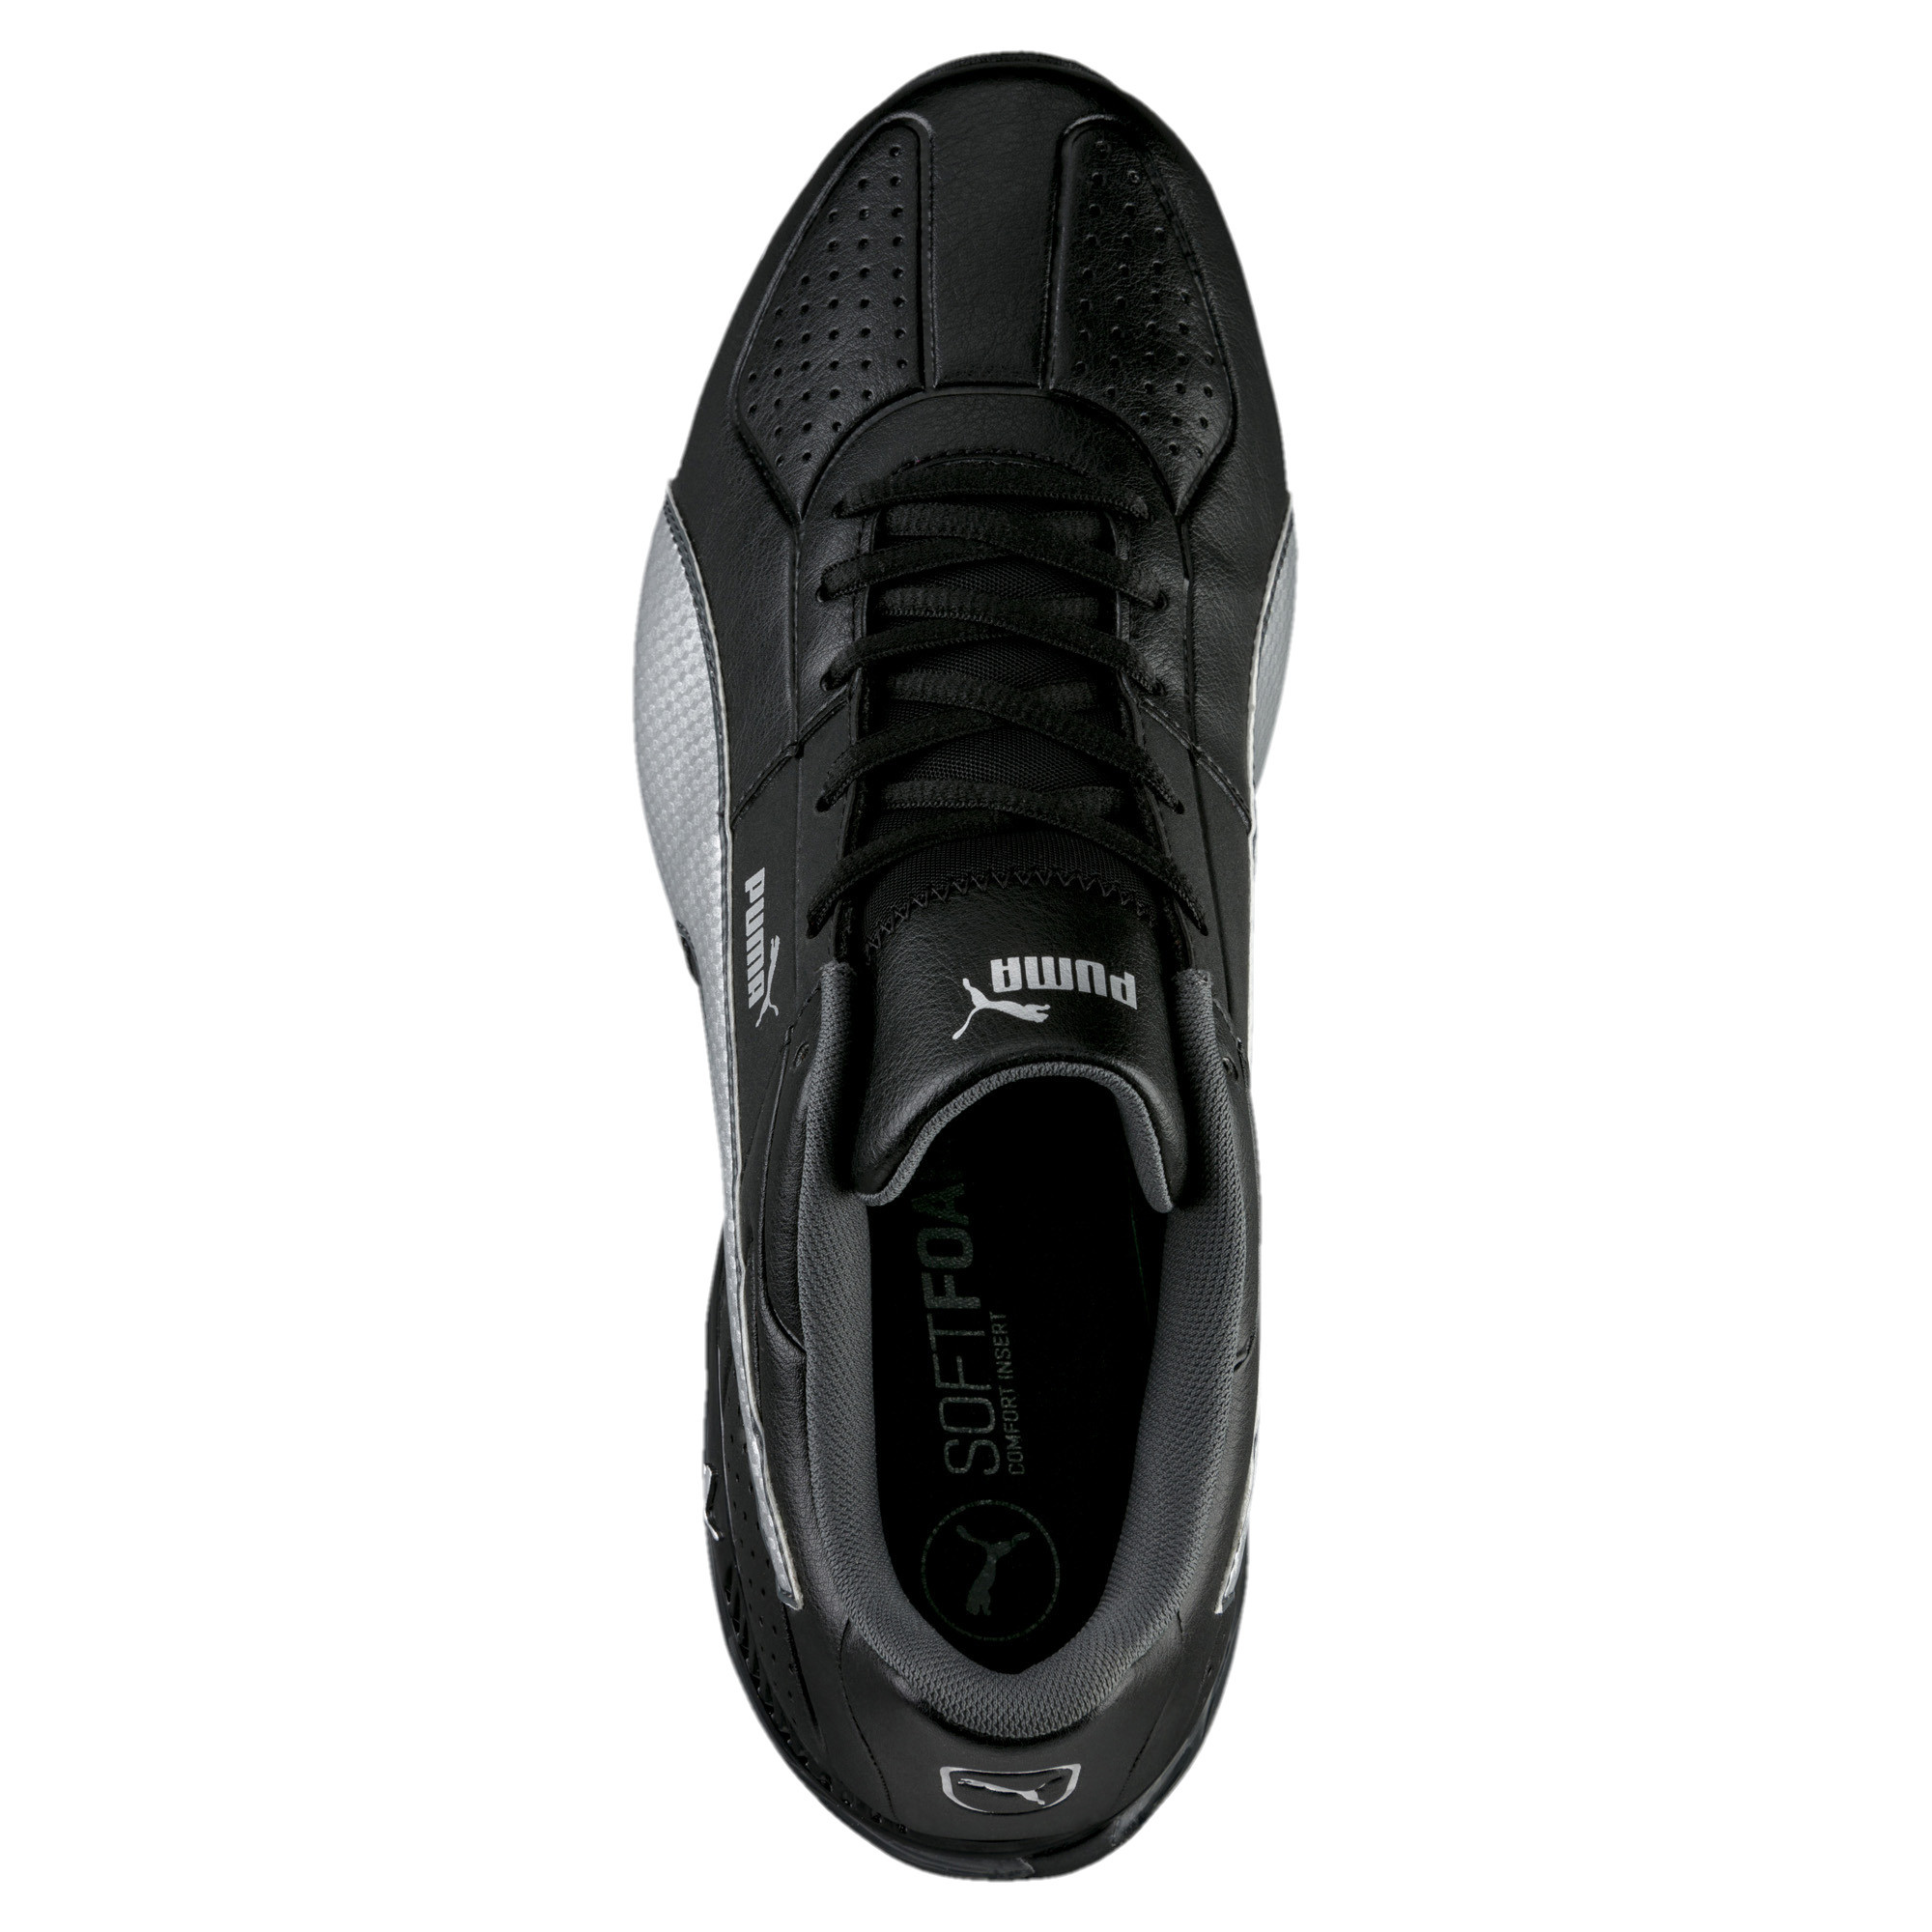 PUMA-CELL-Surin-2-FM-Men-039-s-Running-Shoes-Men-Shoe-Running thumbnail 11